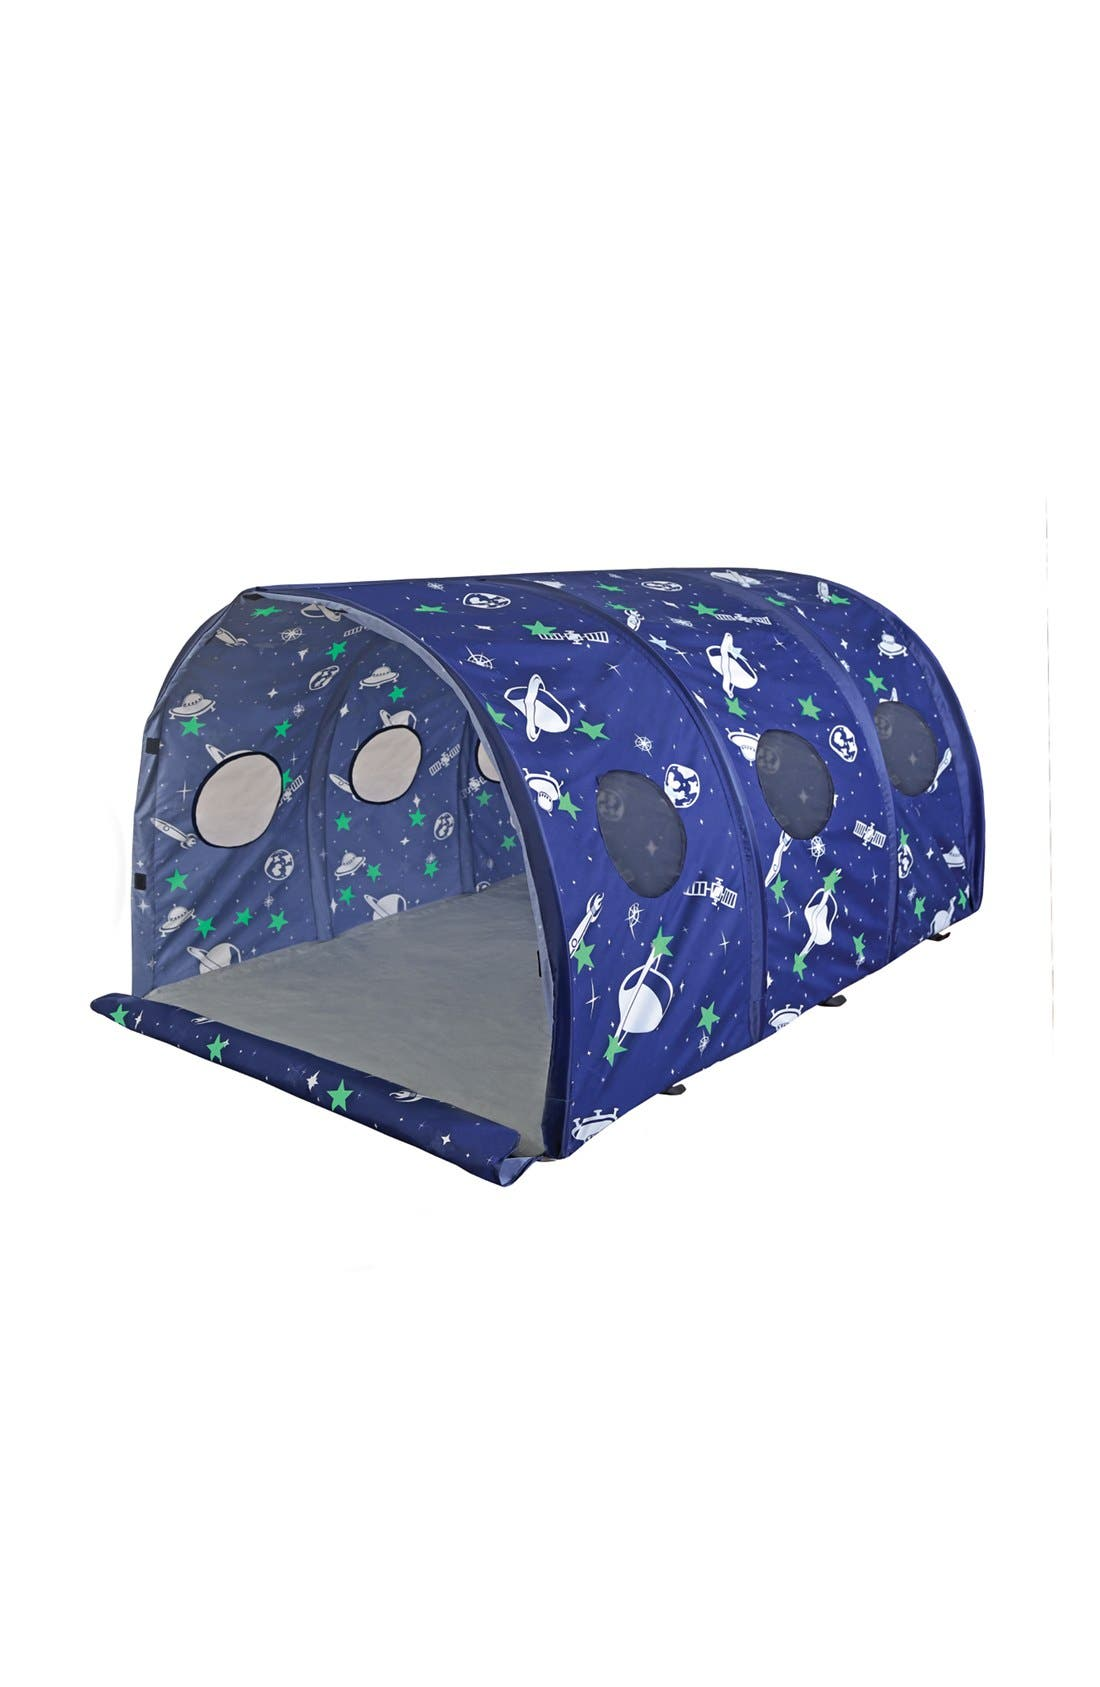 Alternate Image 1 Selected - Pacific Play Tents 'Space Capsule' Glow in the Dark Tent